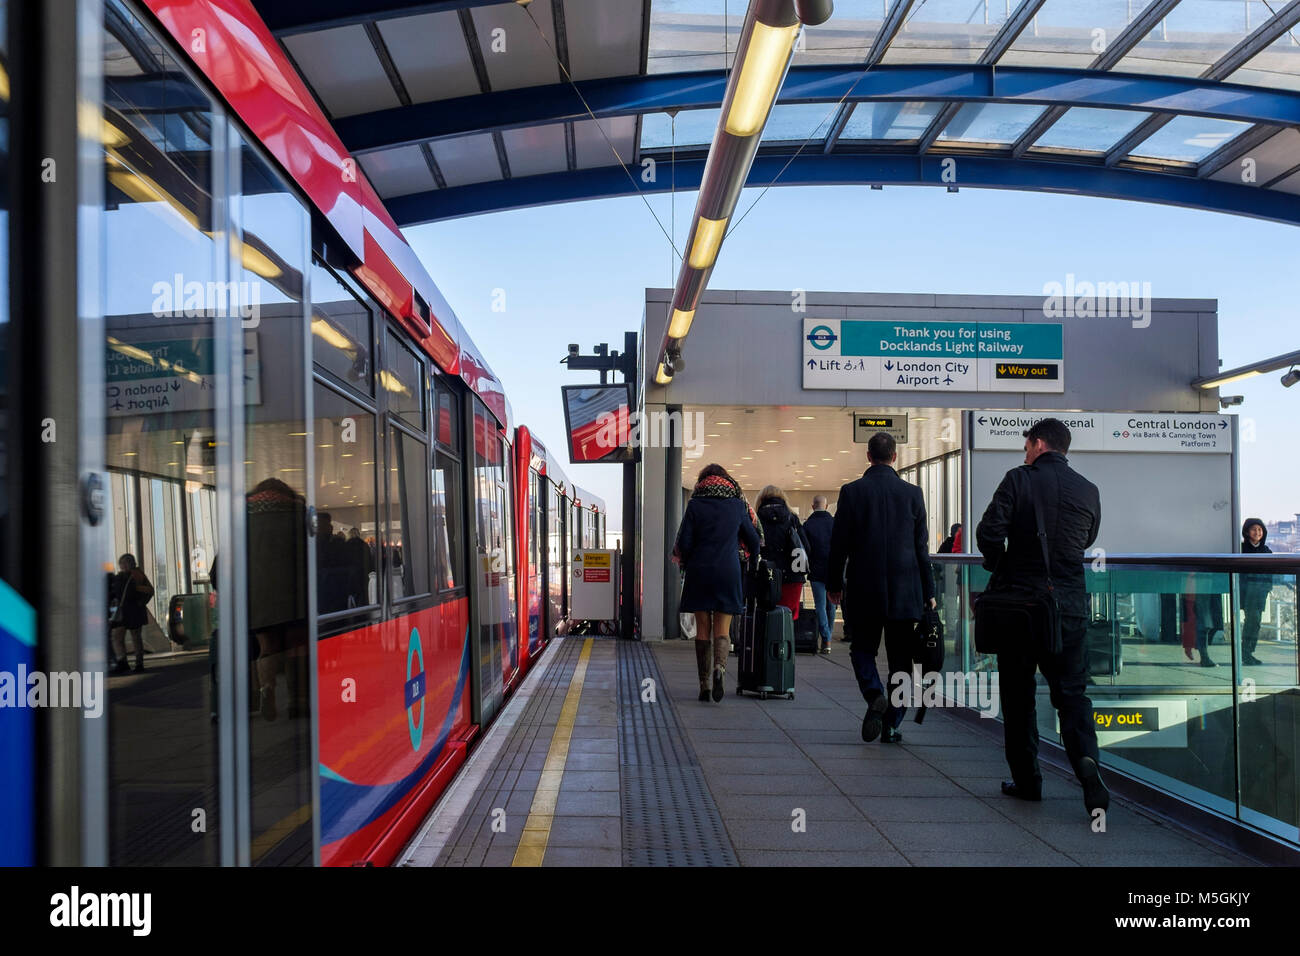 London Docklands Light Railway: Passengers disembarking at London City Airport station. - Stock Image